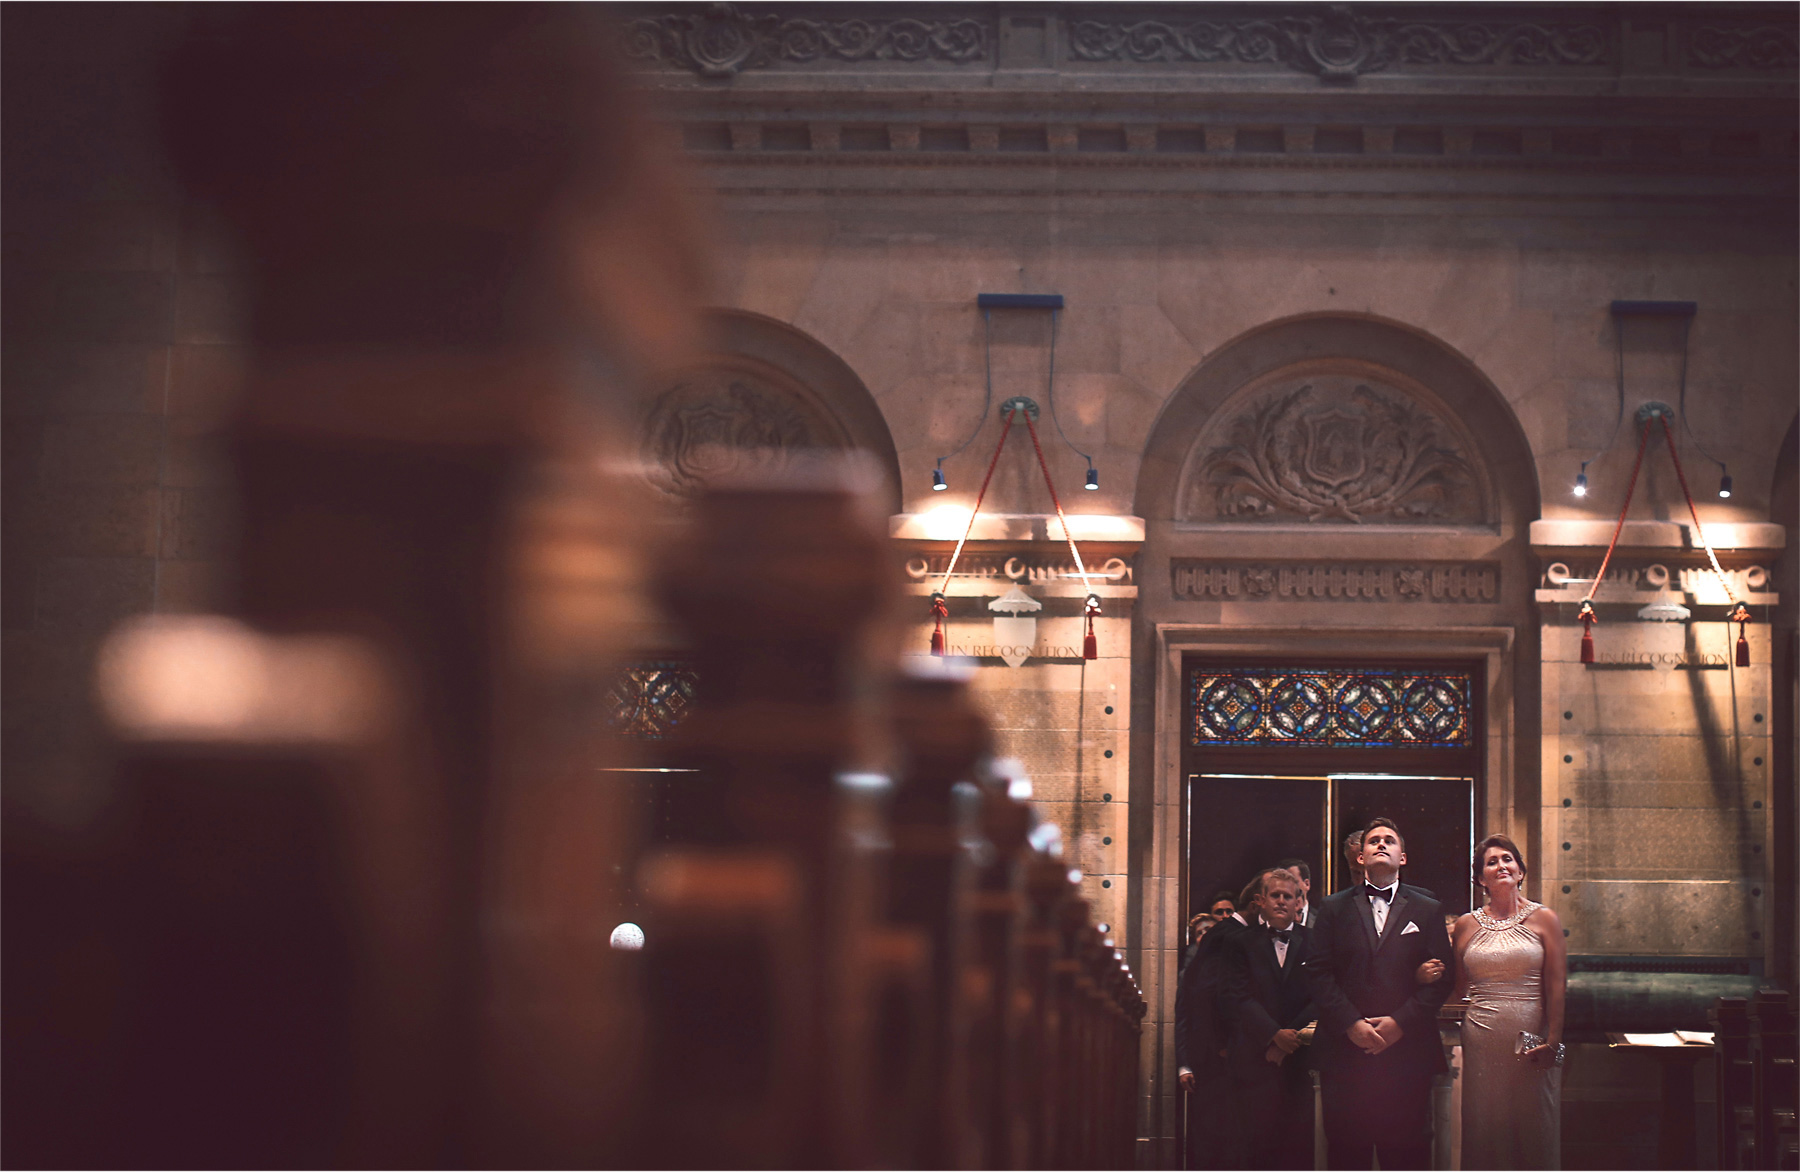 09-Minneapolis-Minnesota-Wedding-Photographer-by-Andrew-Vick-Photography-Summer-Basilica-of-Saint-Mary-Ceremony-Groom-Mother-Parents-Bridal-Party-Vintage-Emily-and-Jay.jpg